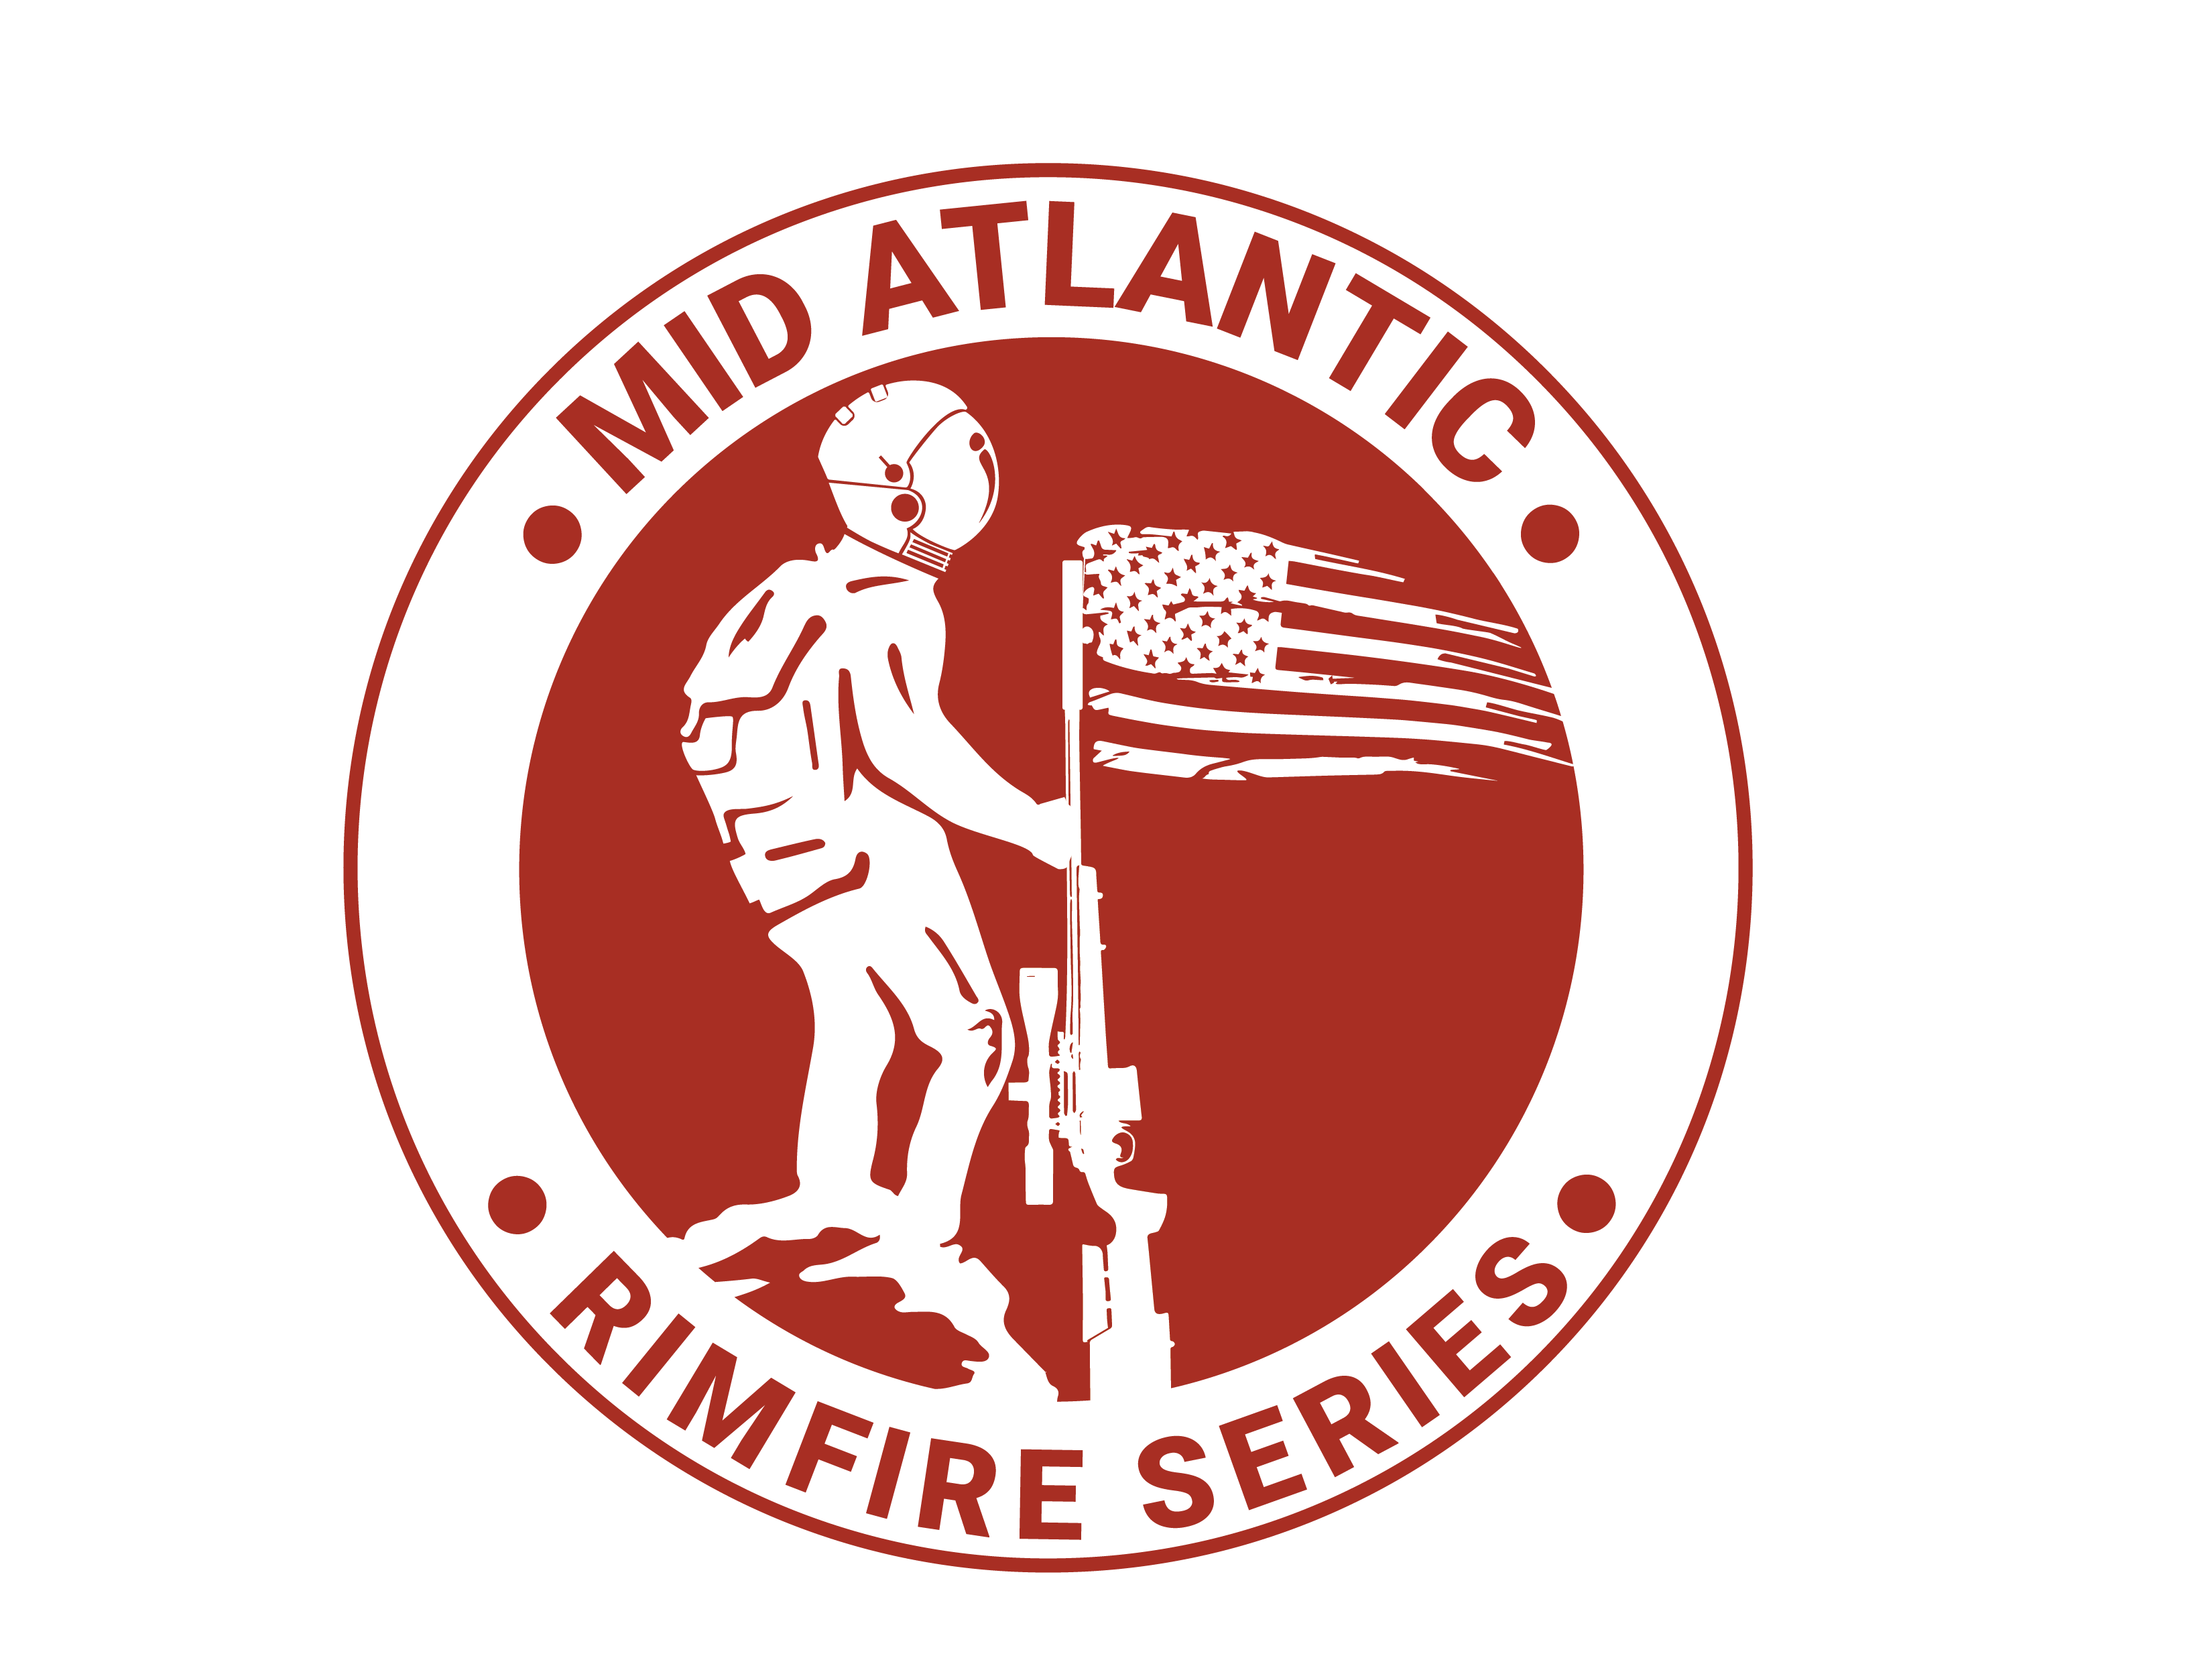 Mid Atlantic Rimfire Series